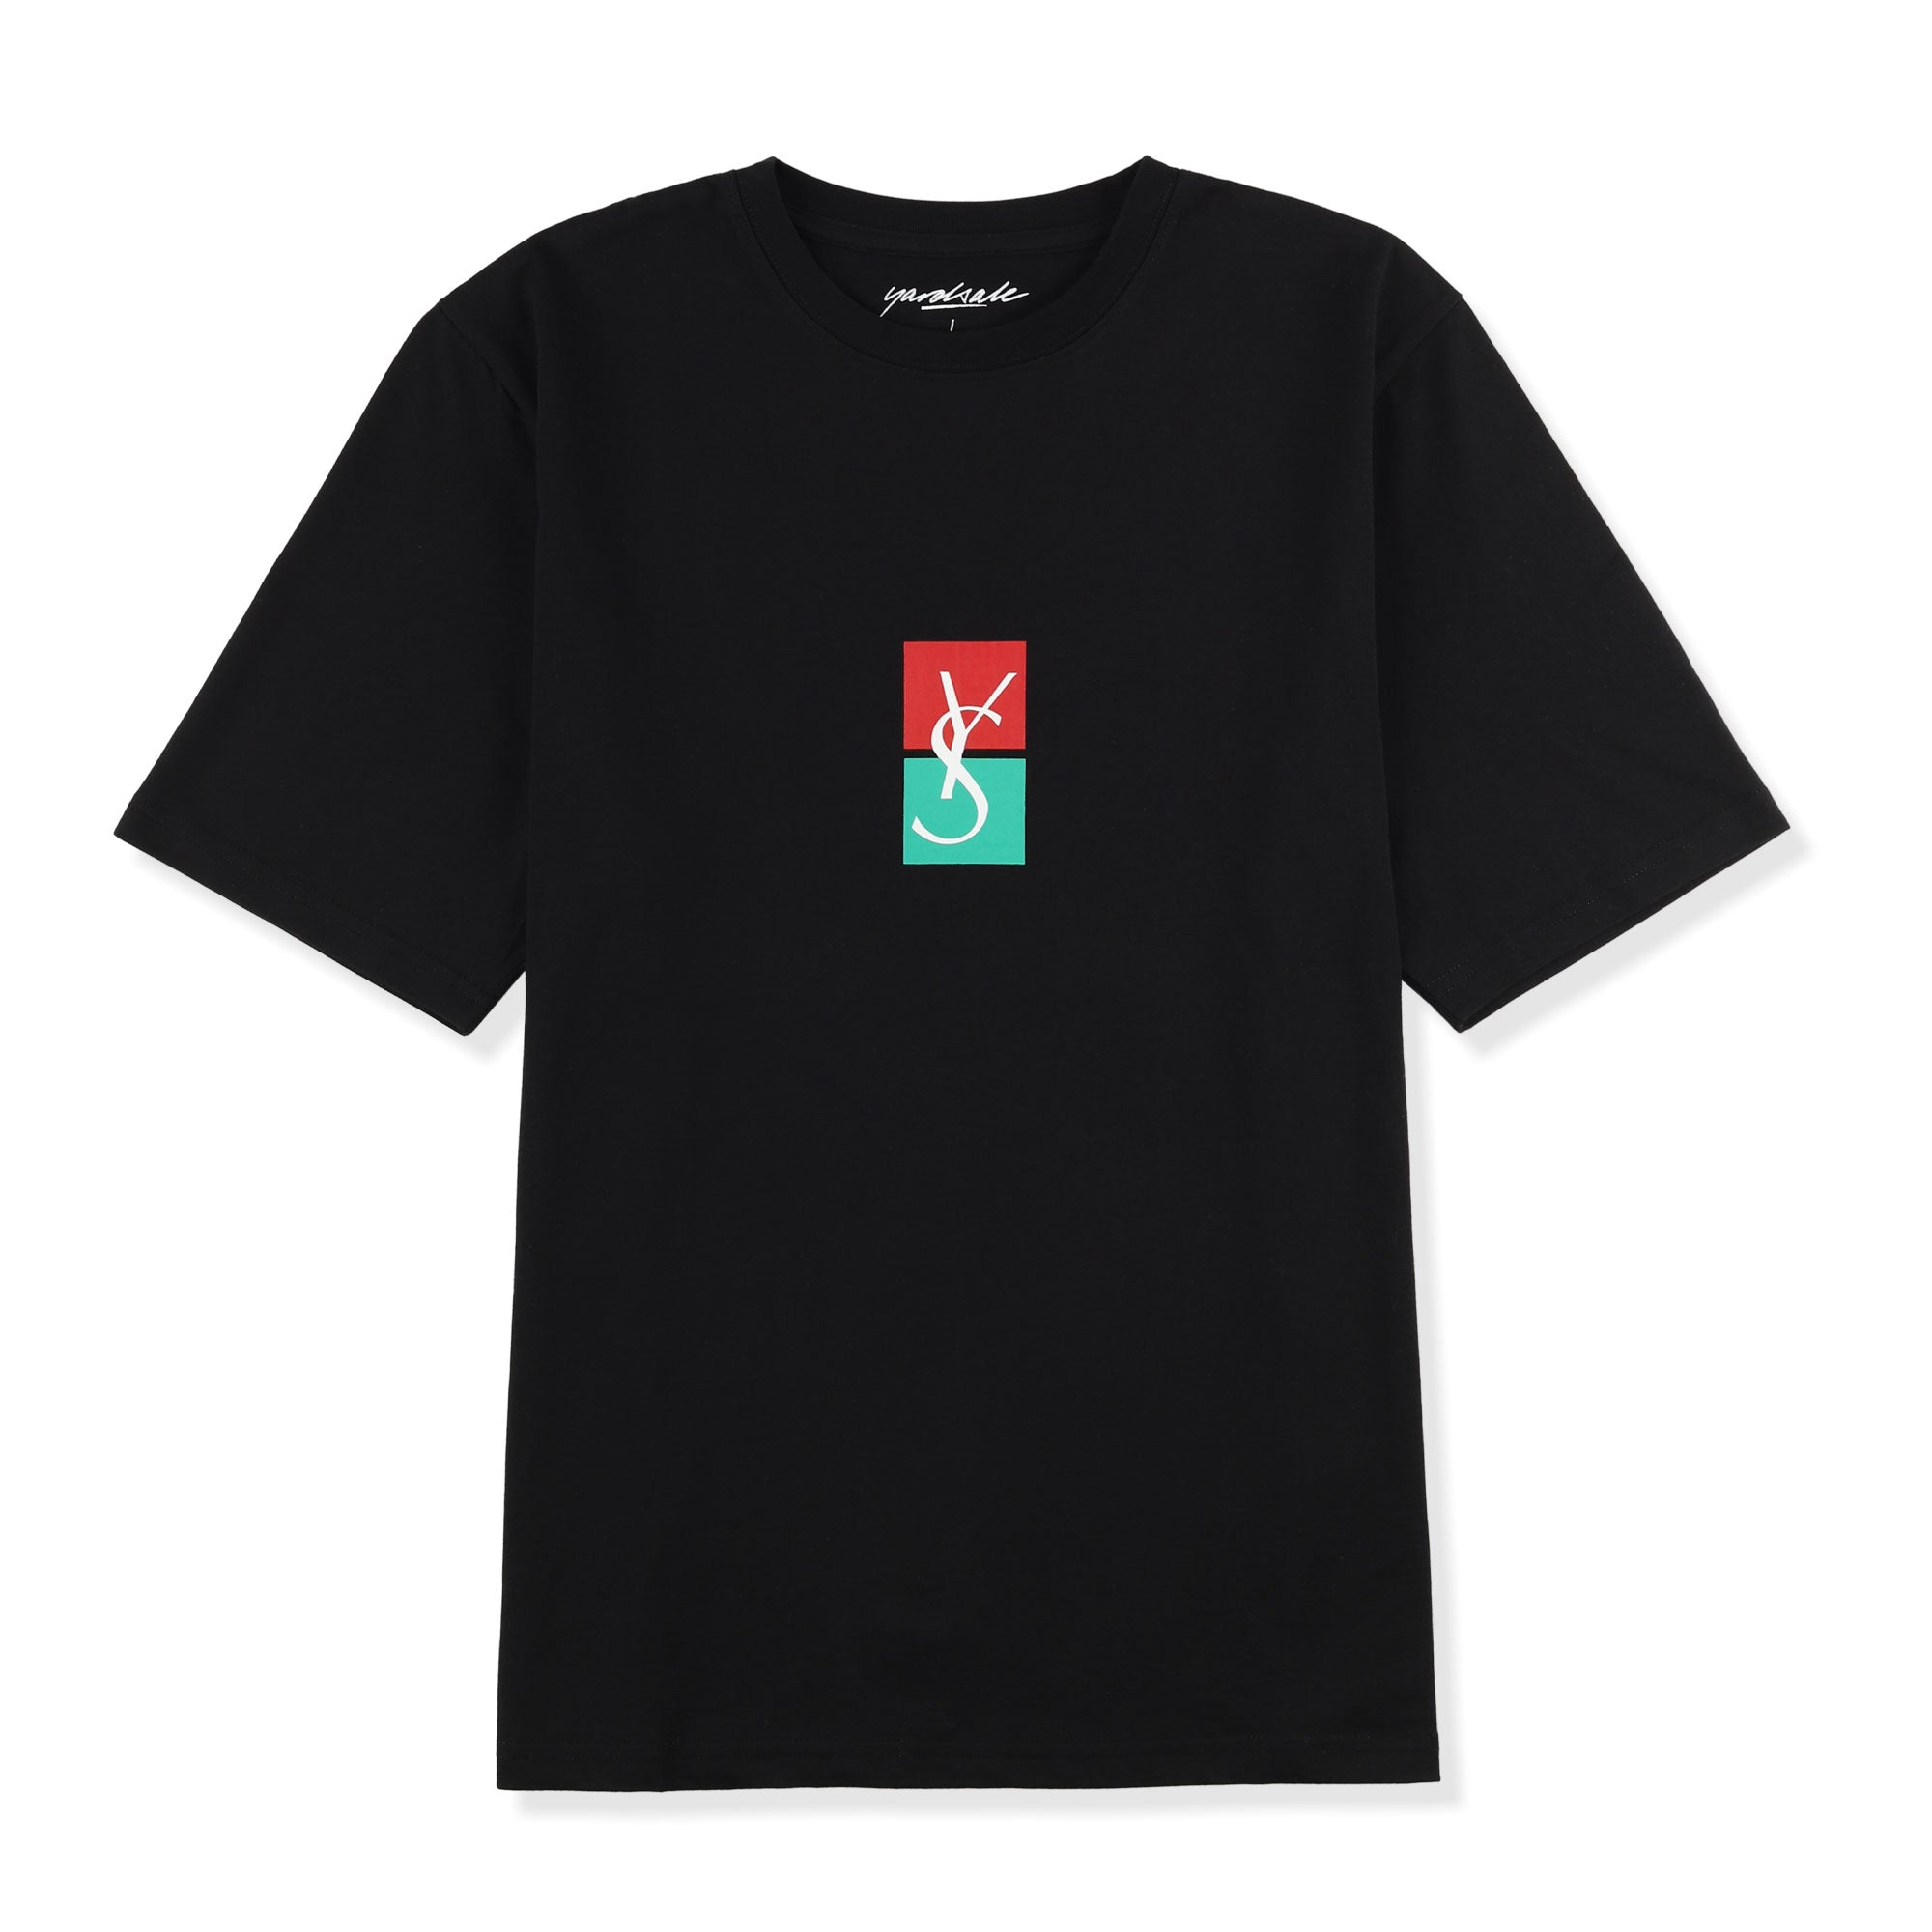 Yardsale YS Split Tee Product Photo #1